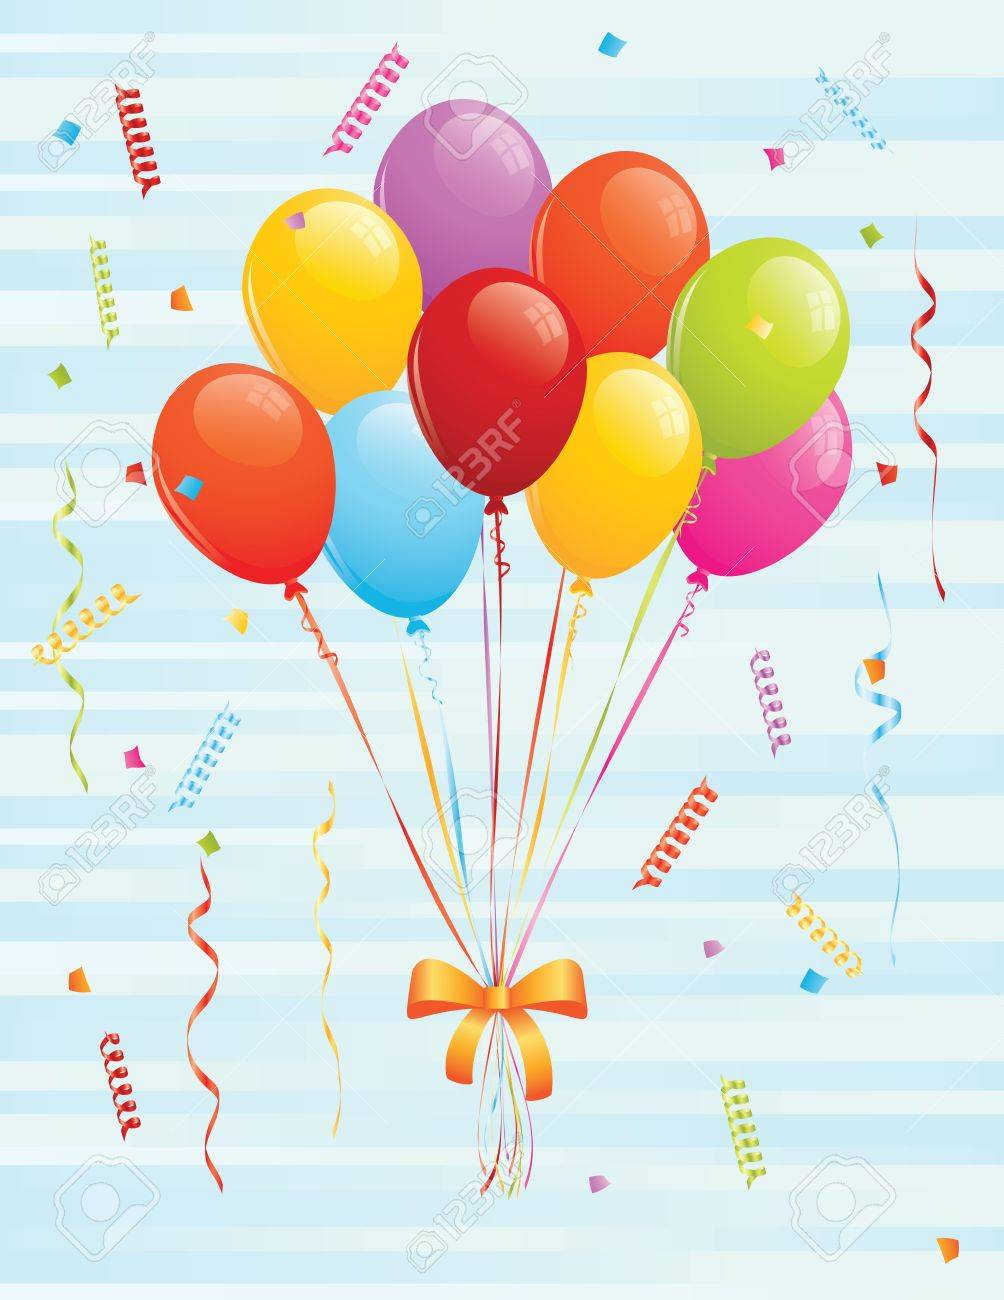 Bunch of balloons and confetti. EPS 8 CMYK with global colors vector illustration. Stock Vector - 10442254